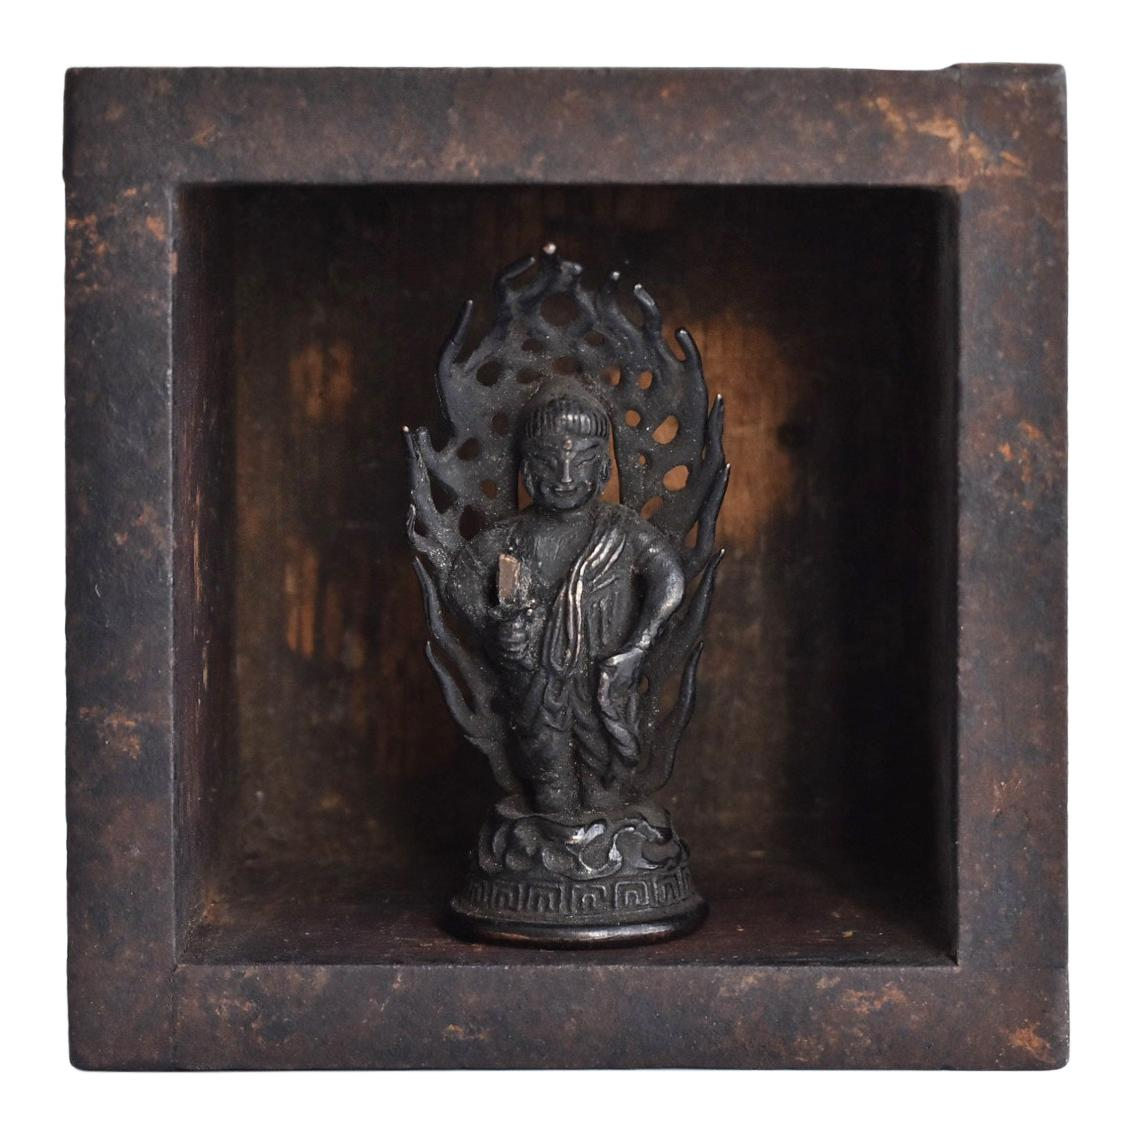 Old Japanese Copper Buddha Statue and Wooden Box / 16th-17th Centuries